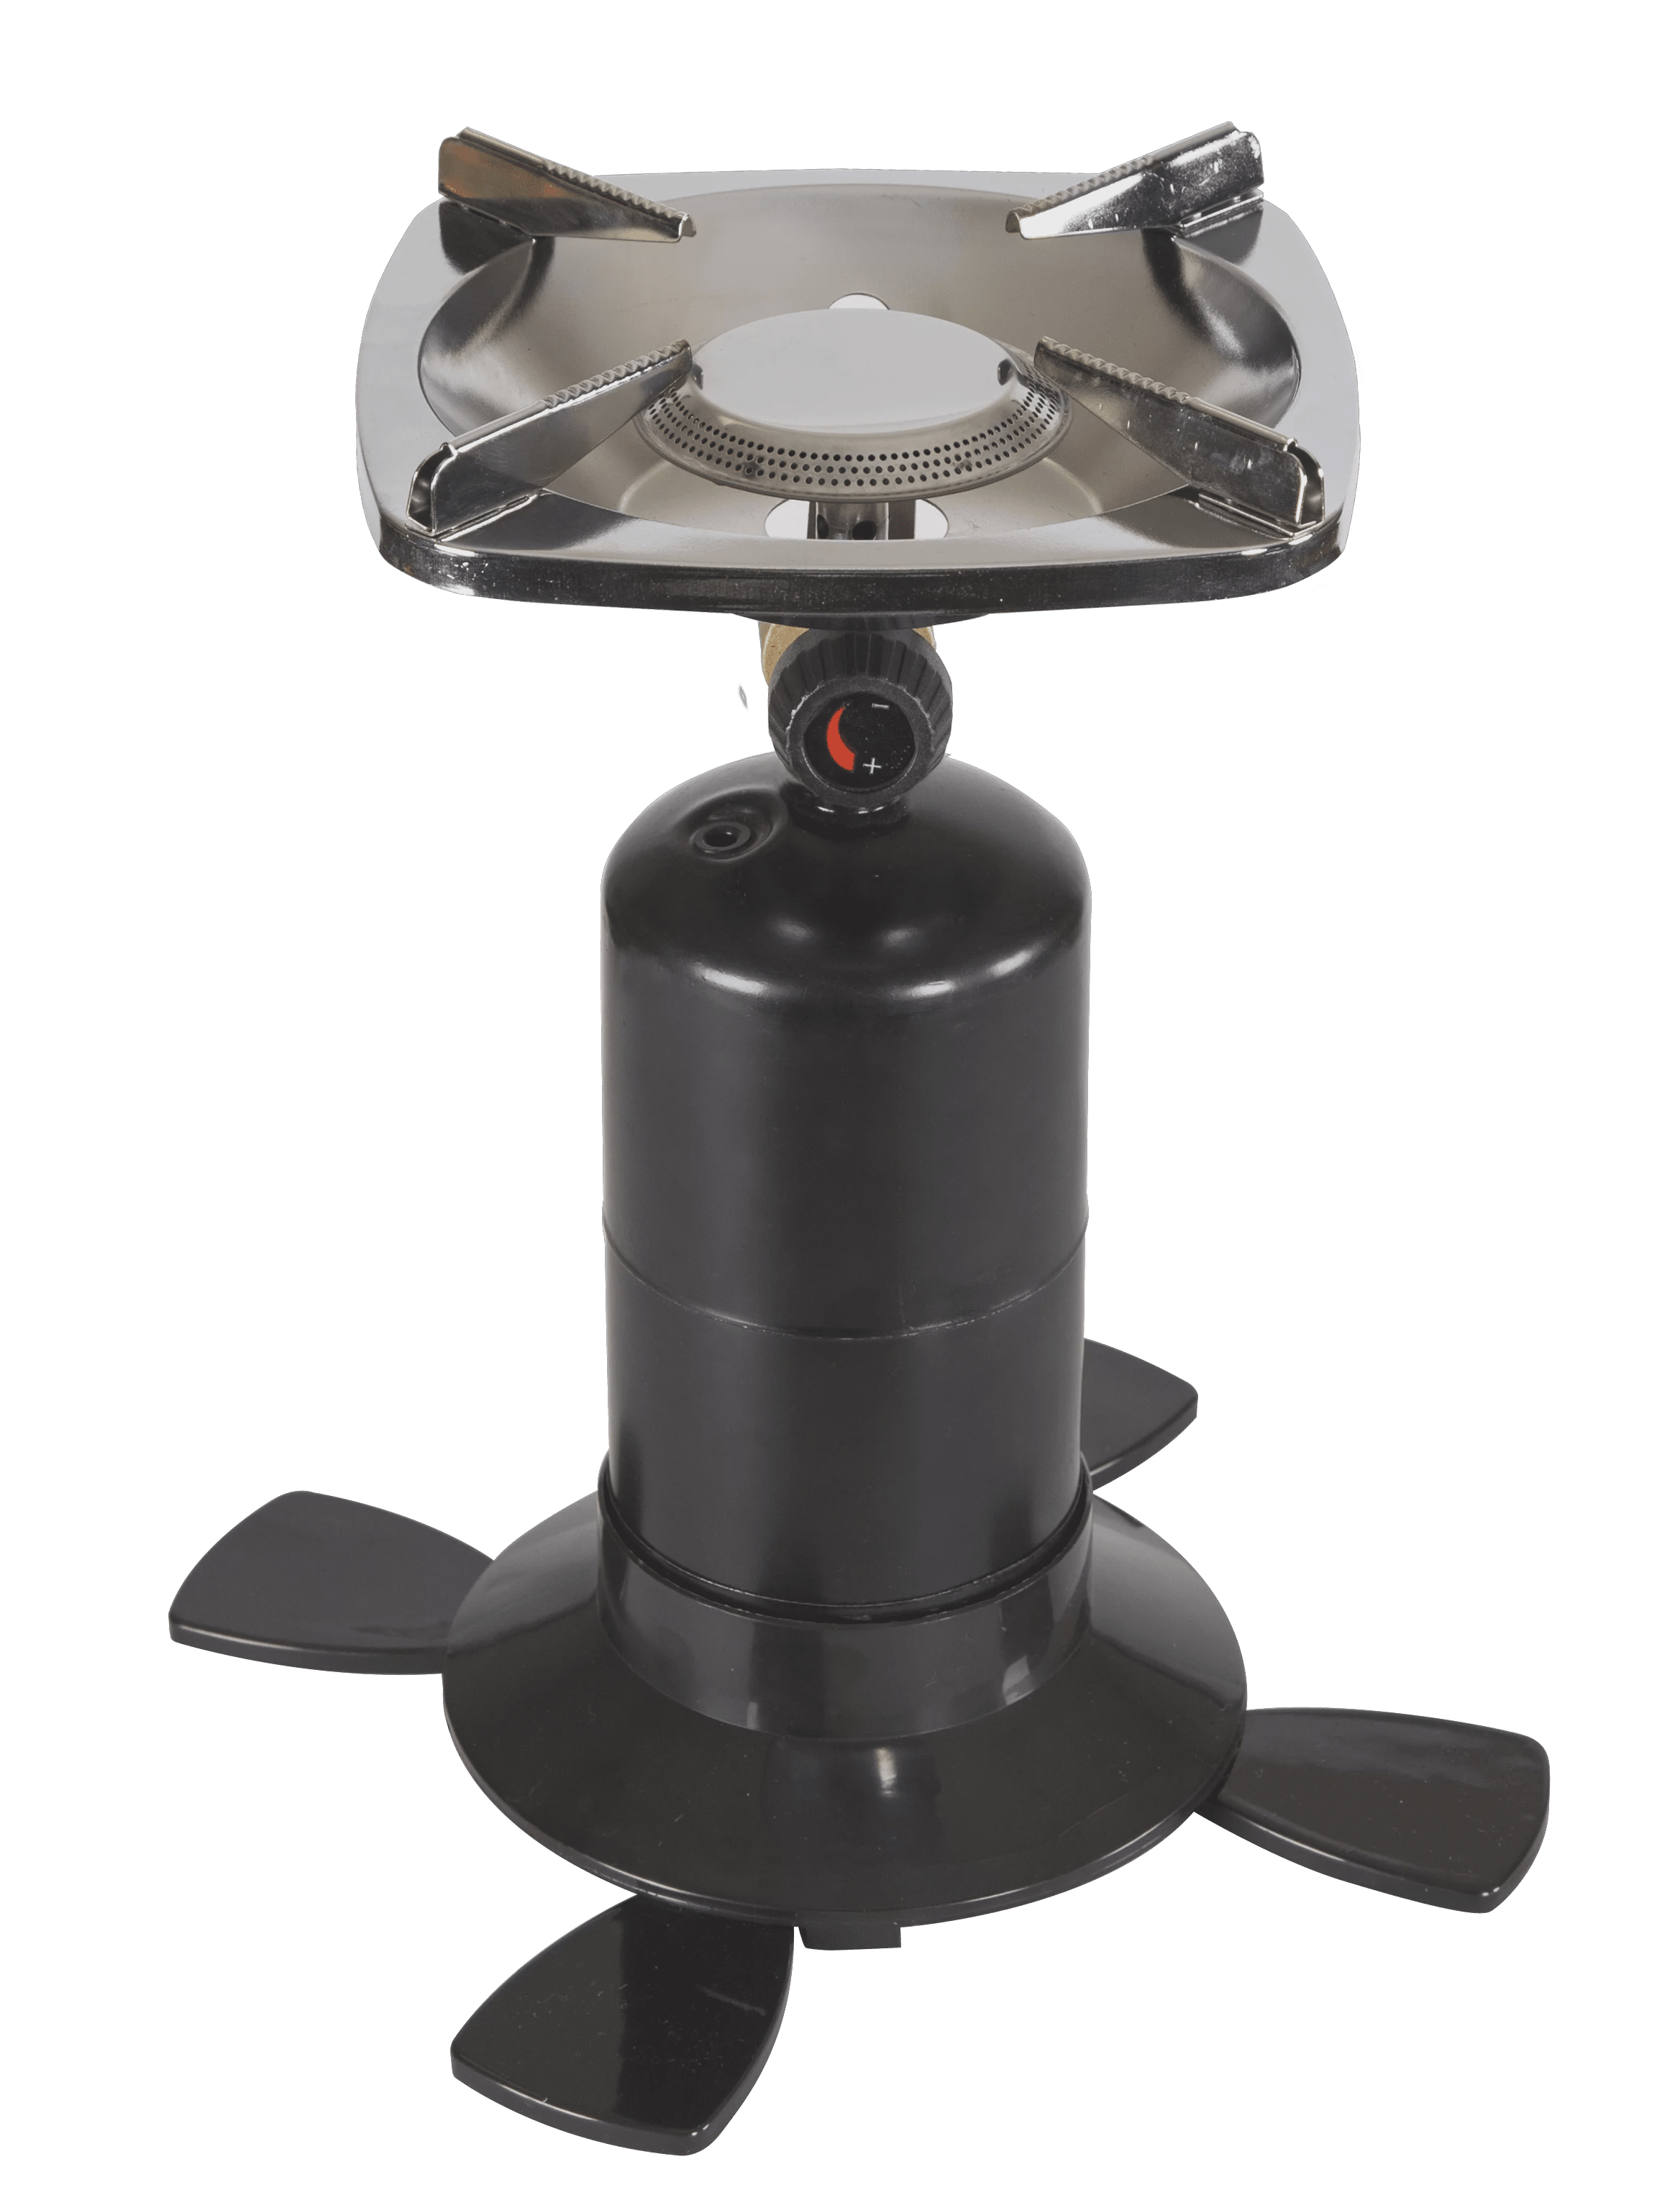 Ozark Trail Single Burner Propane Stove by Stansport